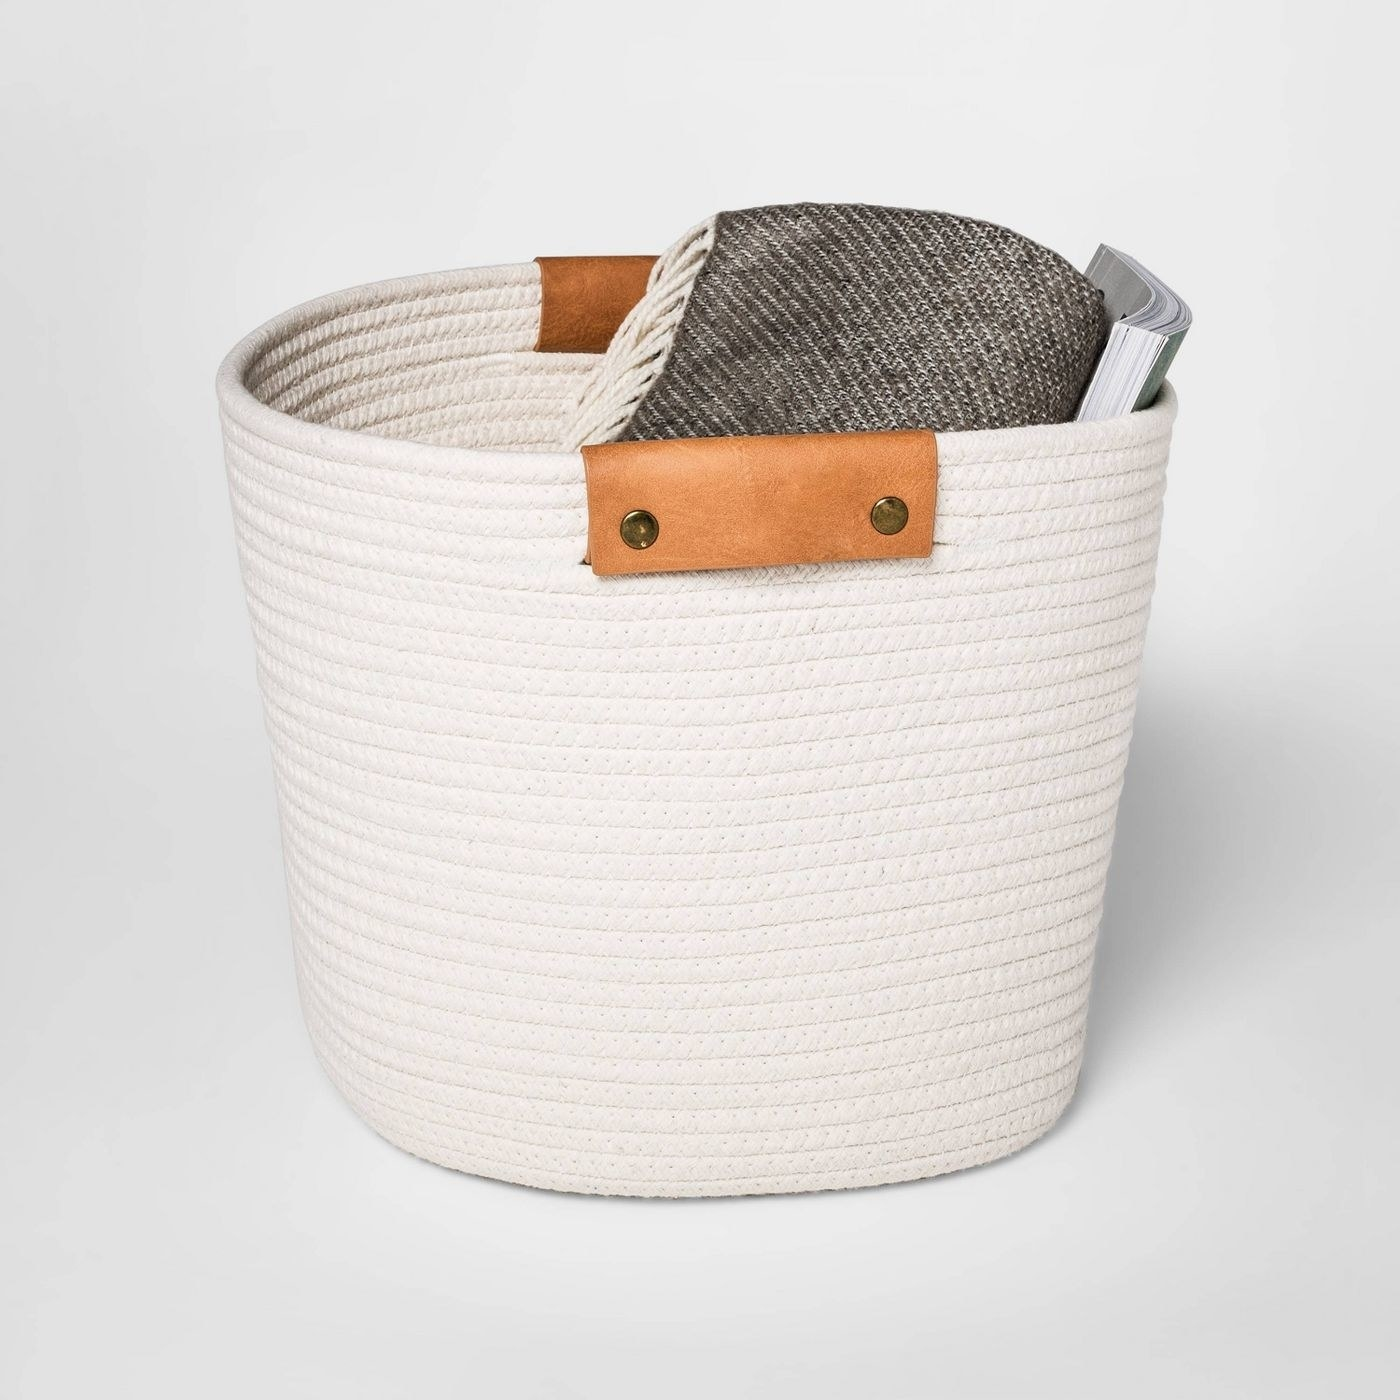 The basket with a blanket and a magazine in it.